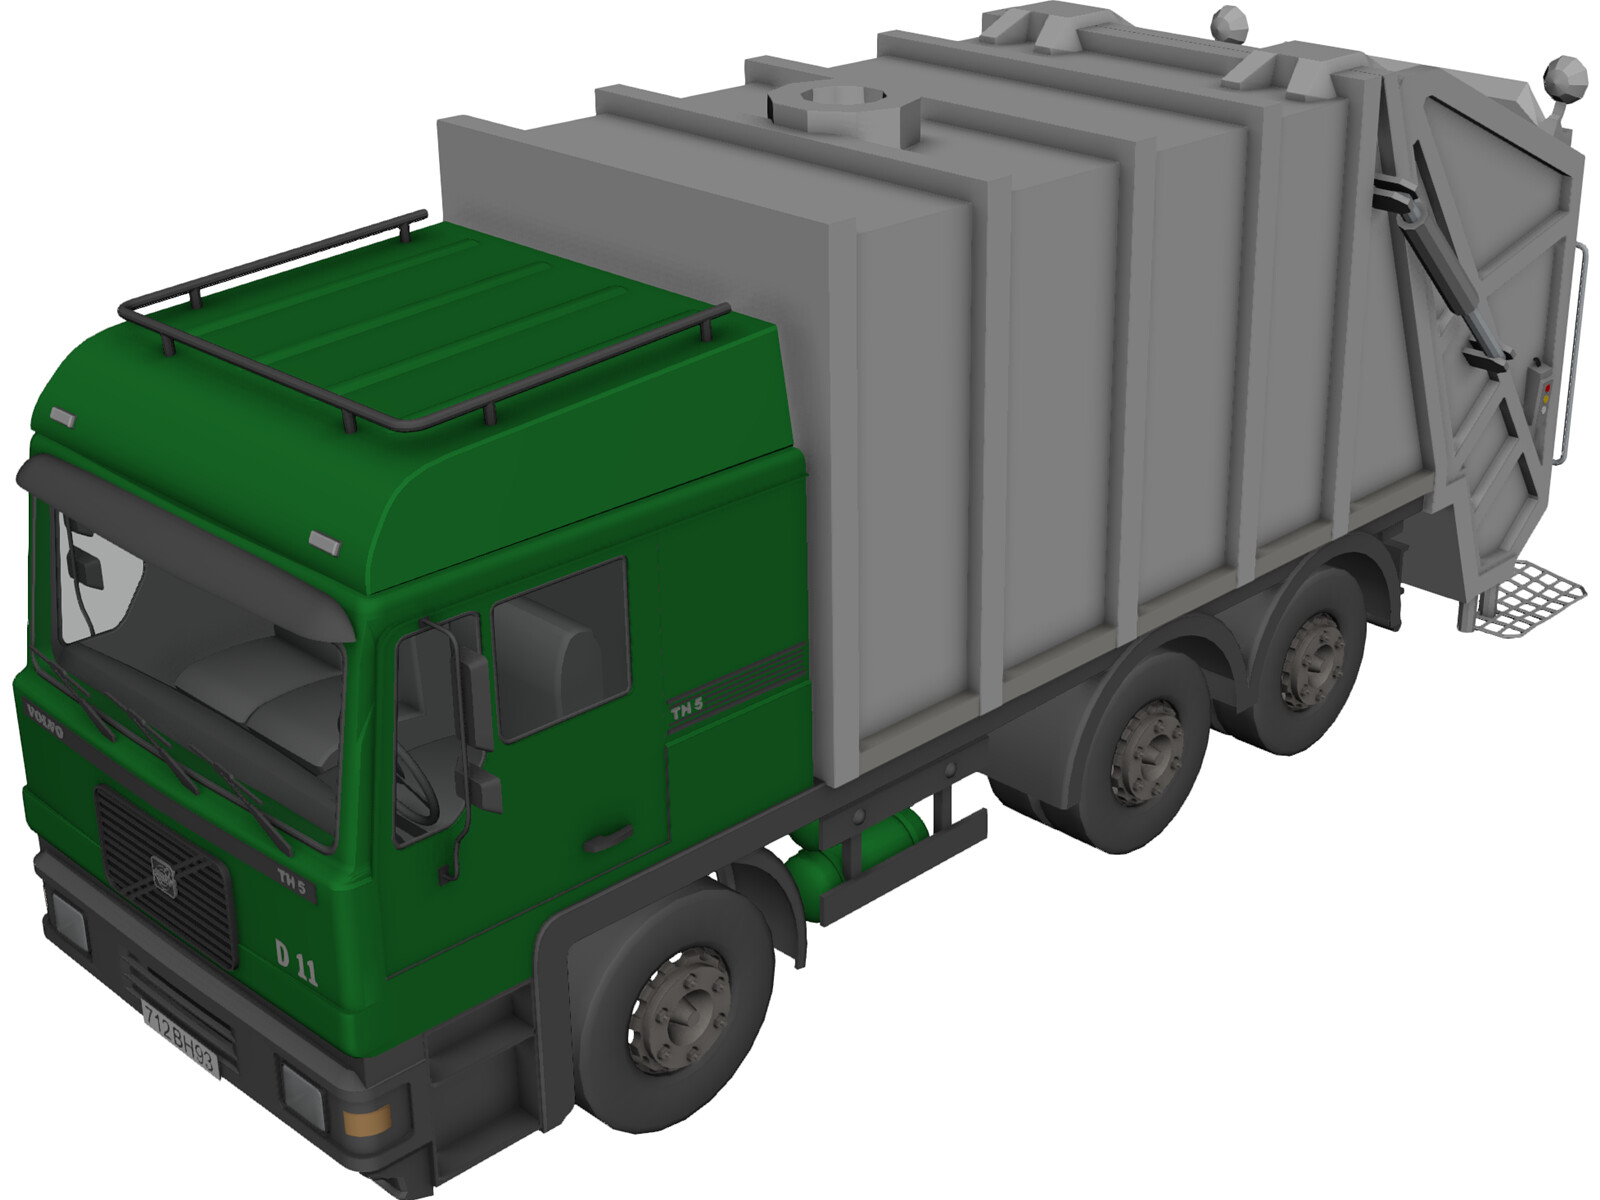 Volvo TH5 Garbage Truck